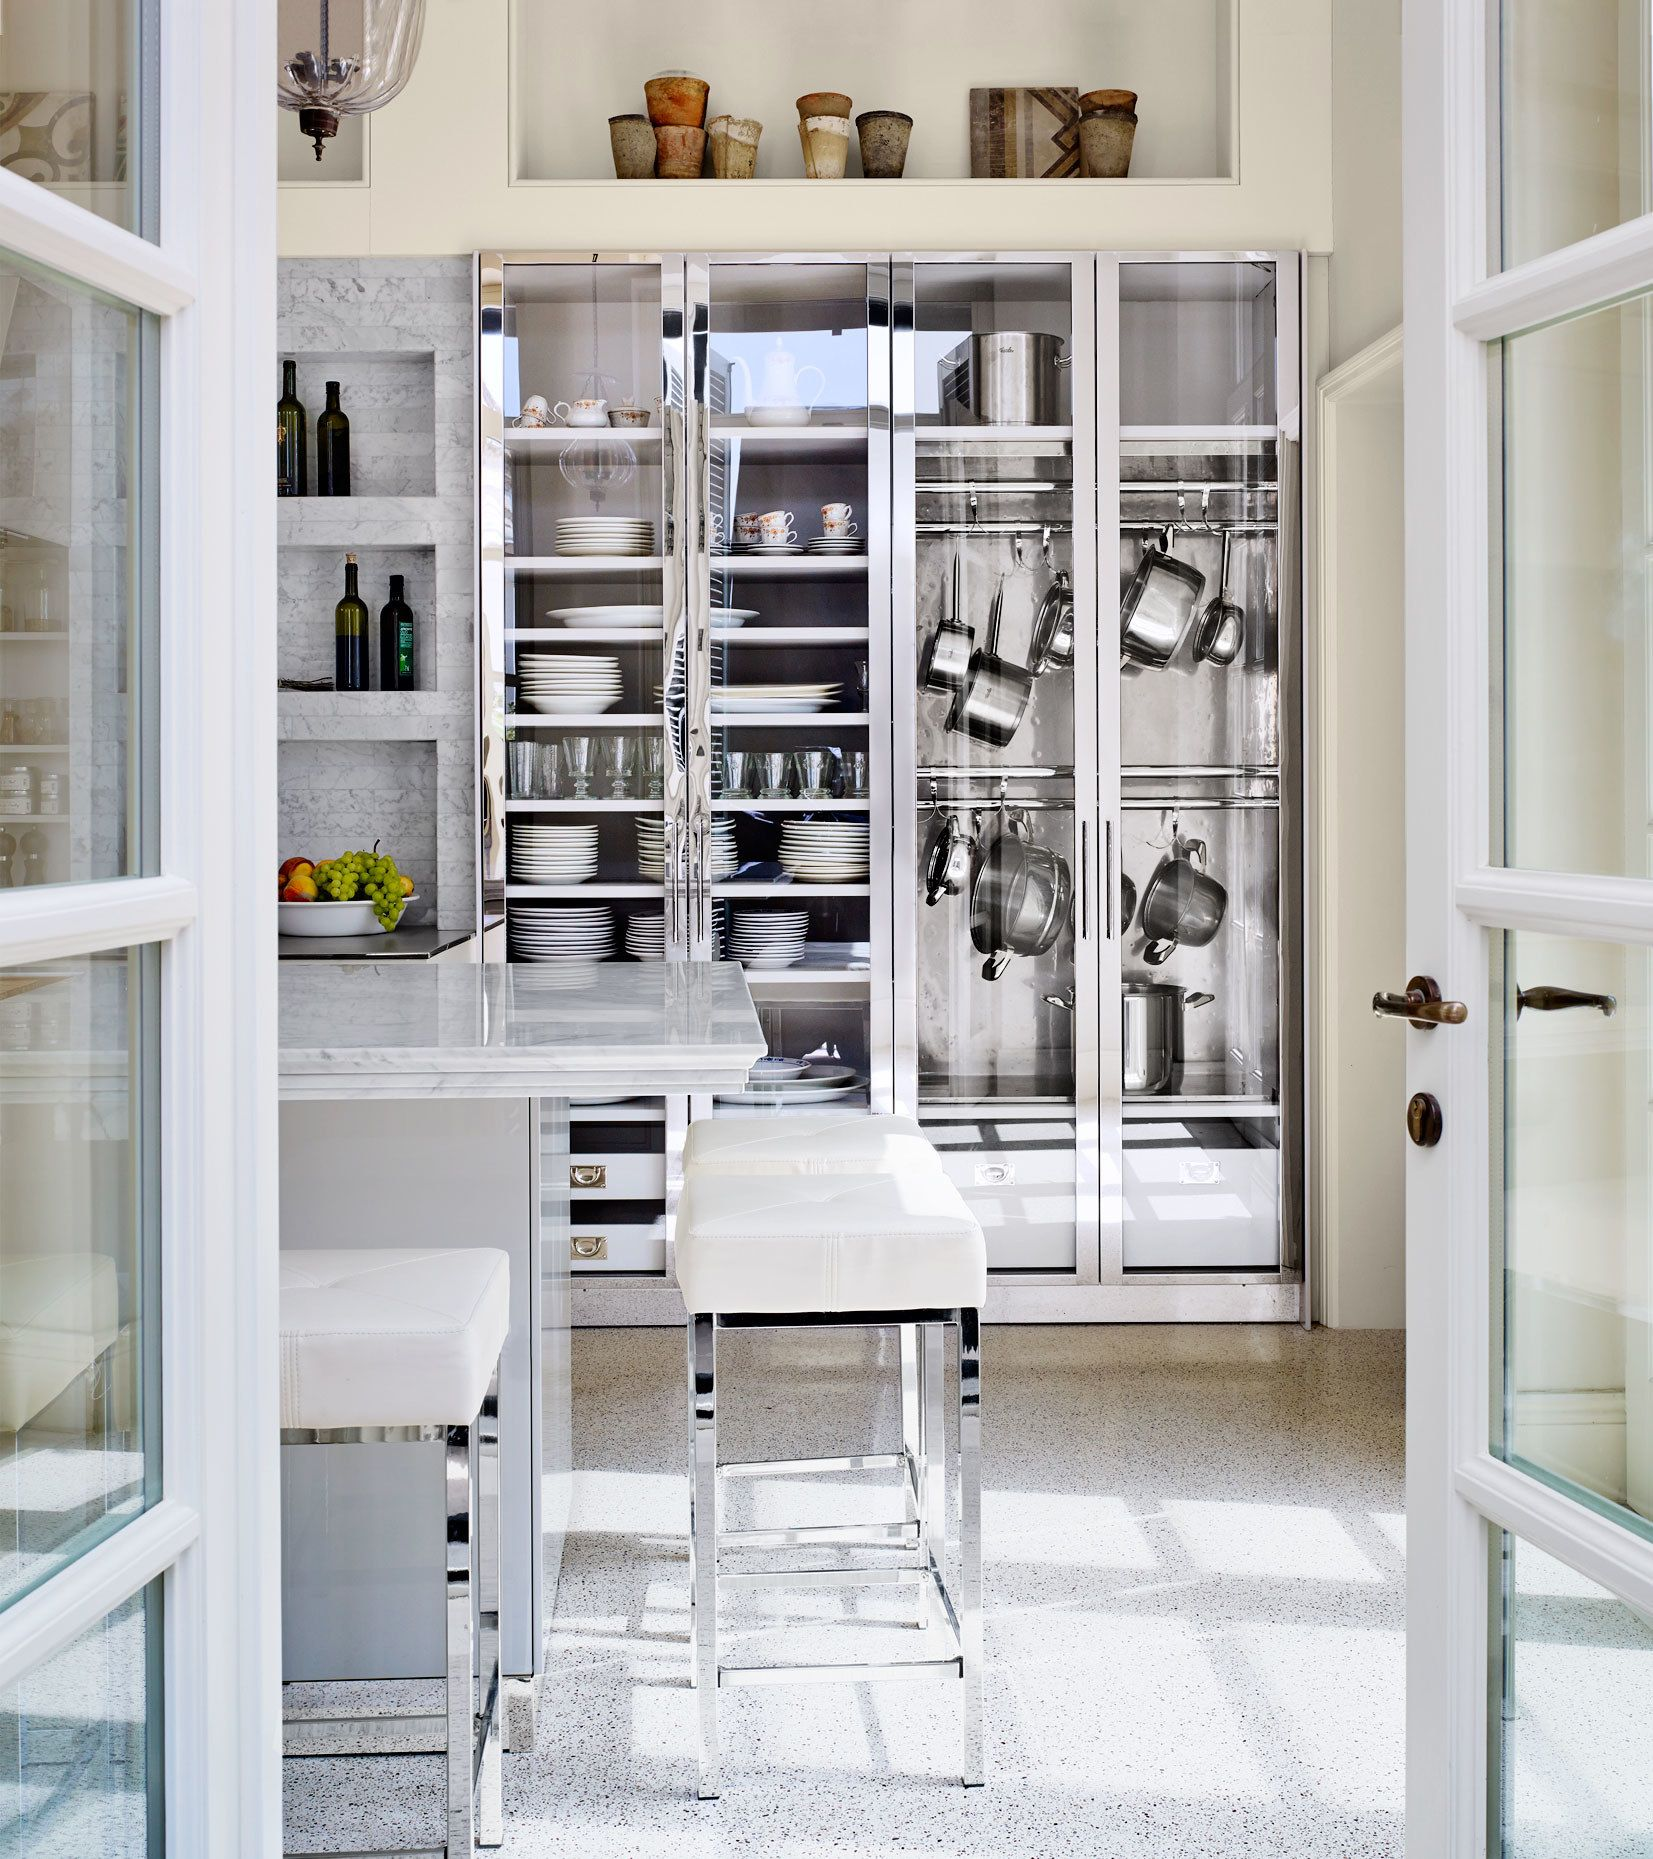 mick de giulio creates the ultimate kitchen for a coppola family palaz architectural digest - Delaware Kitchen Cabinets